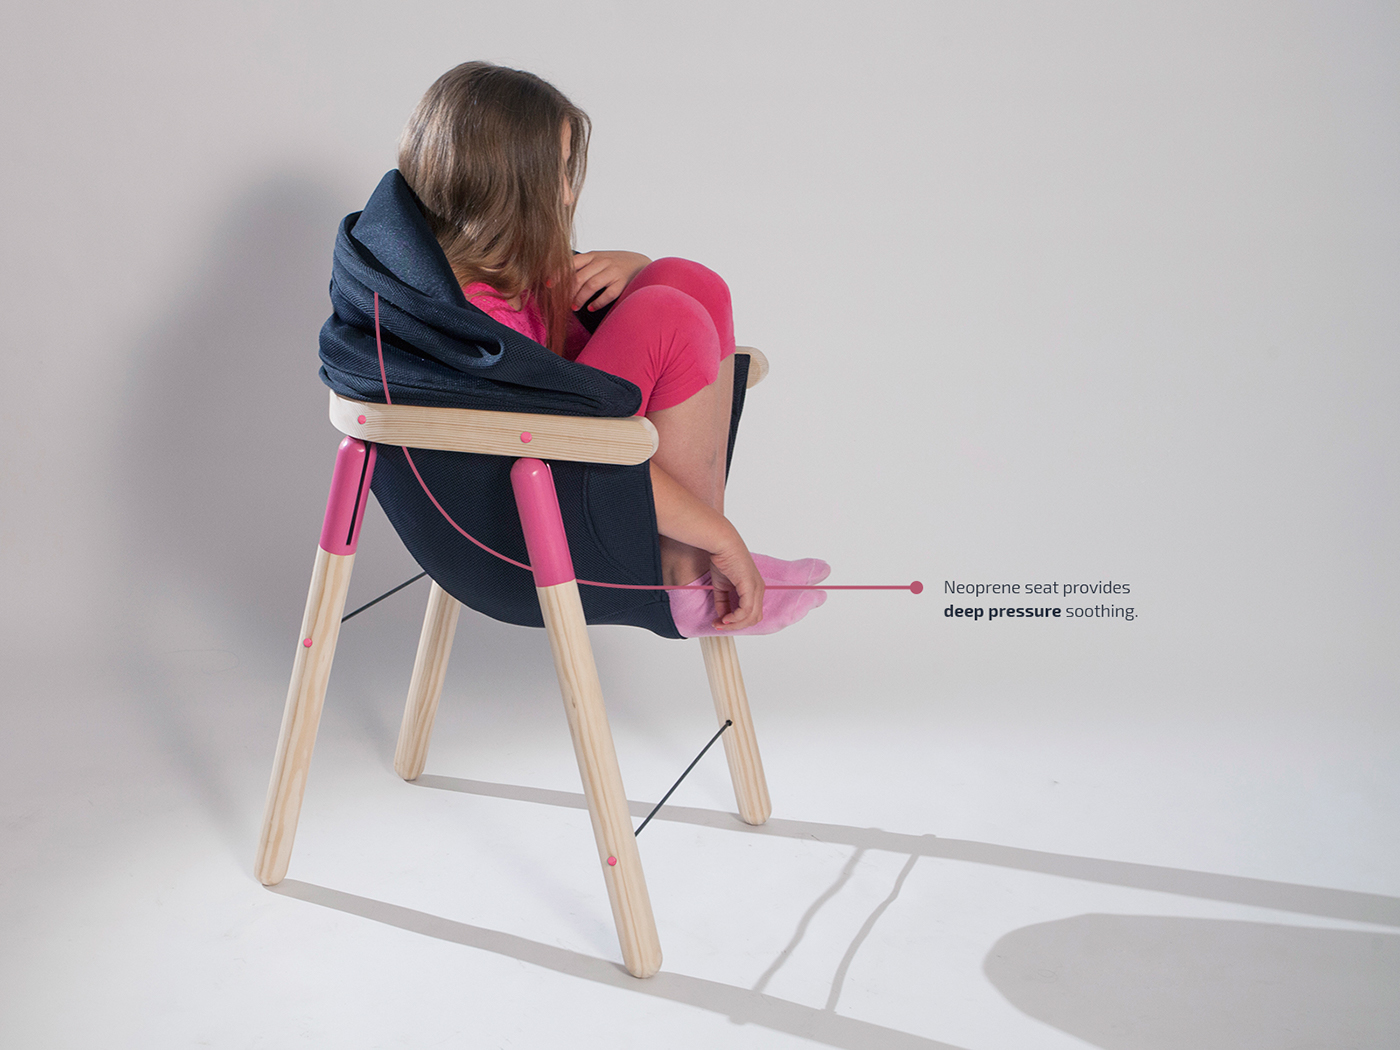 chair for autistic child glider rocking and ottoman cushions mia tink things furniture on behance